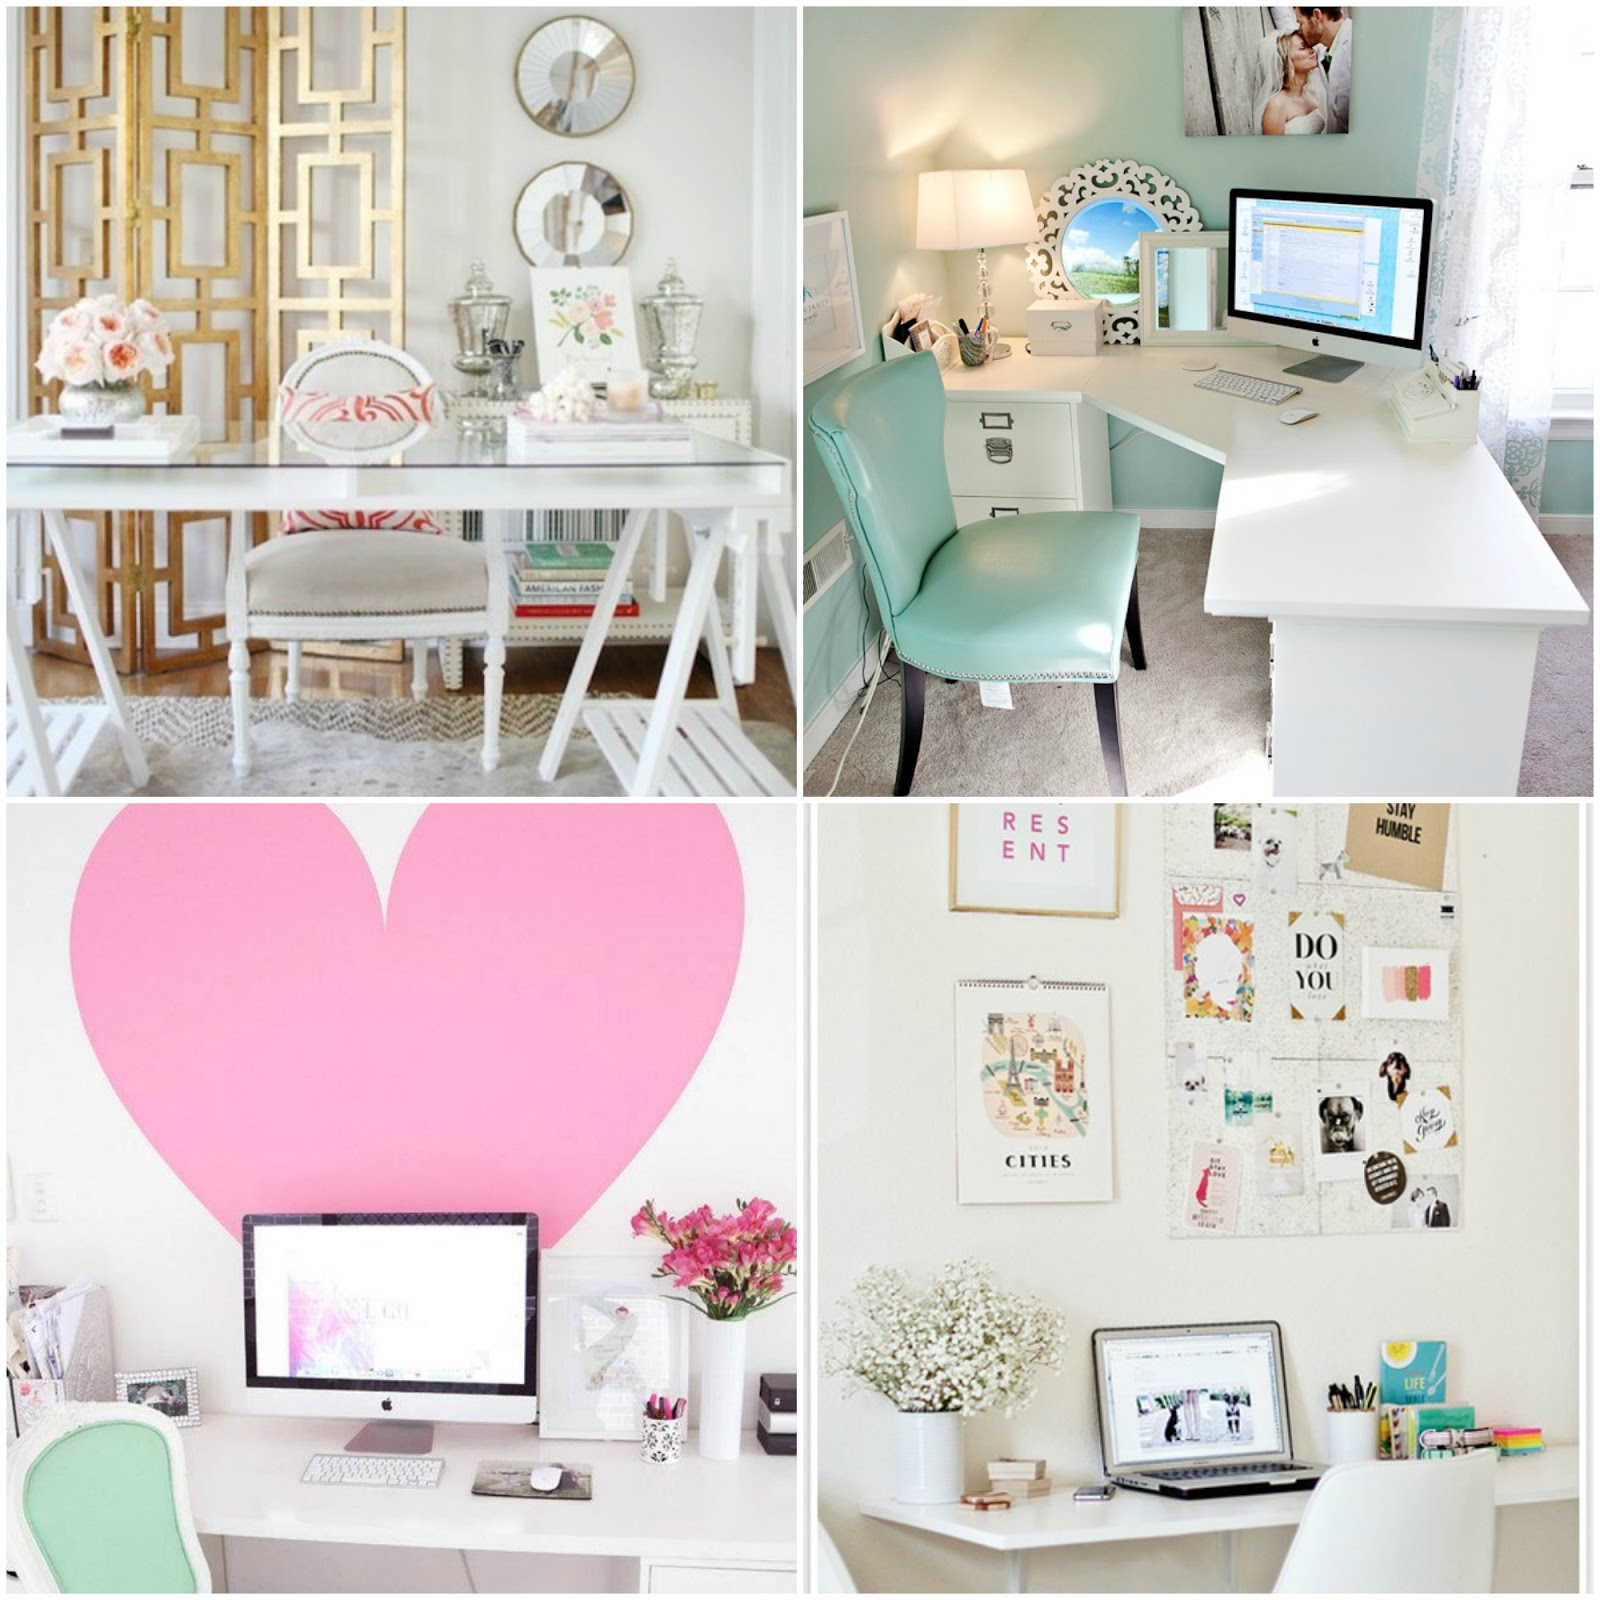 Home Inspiration: The Southern Thing: Home Office Inspiration